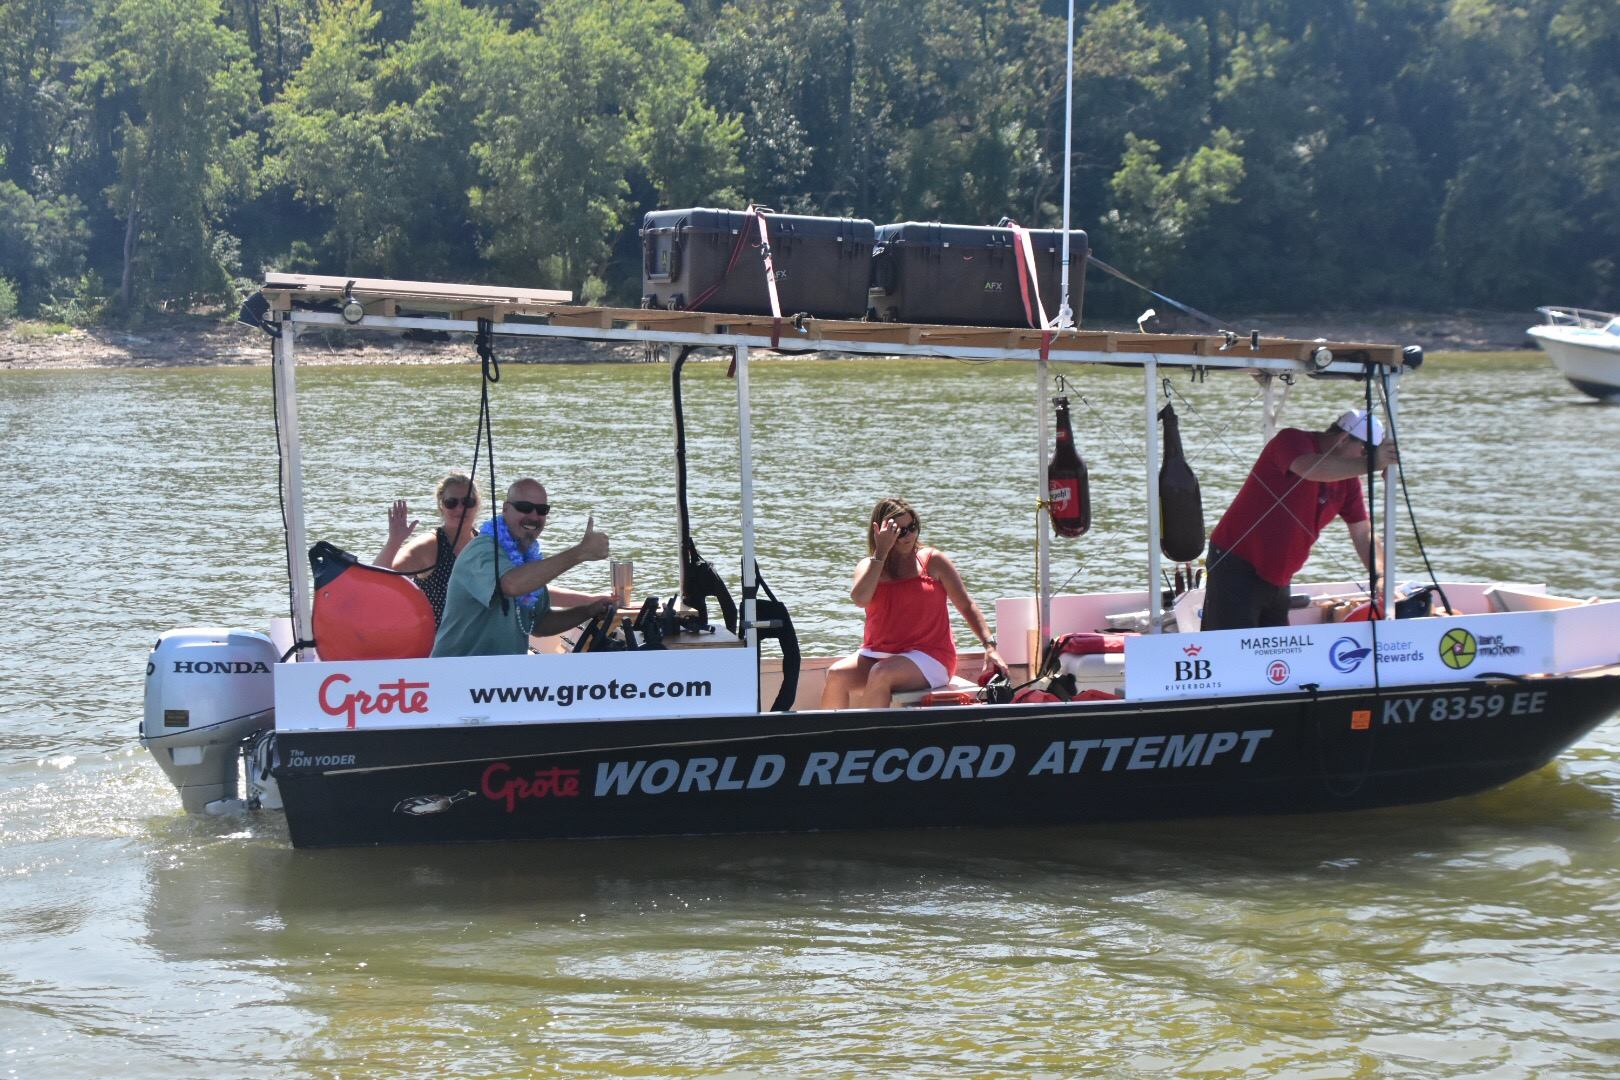 Marc Phelps on his jon boat during his attempt to break the world record